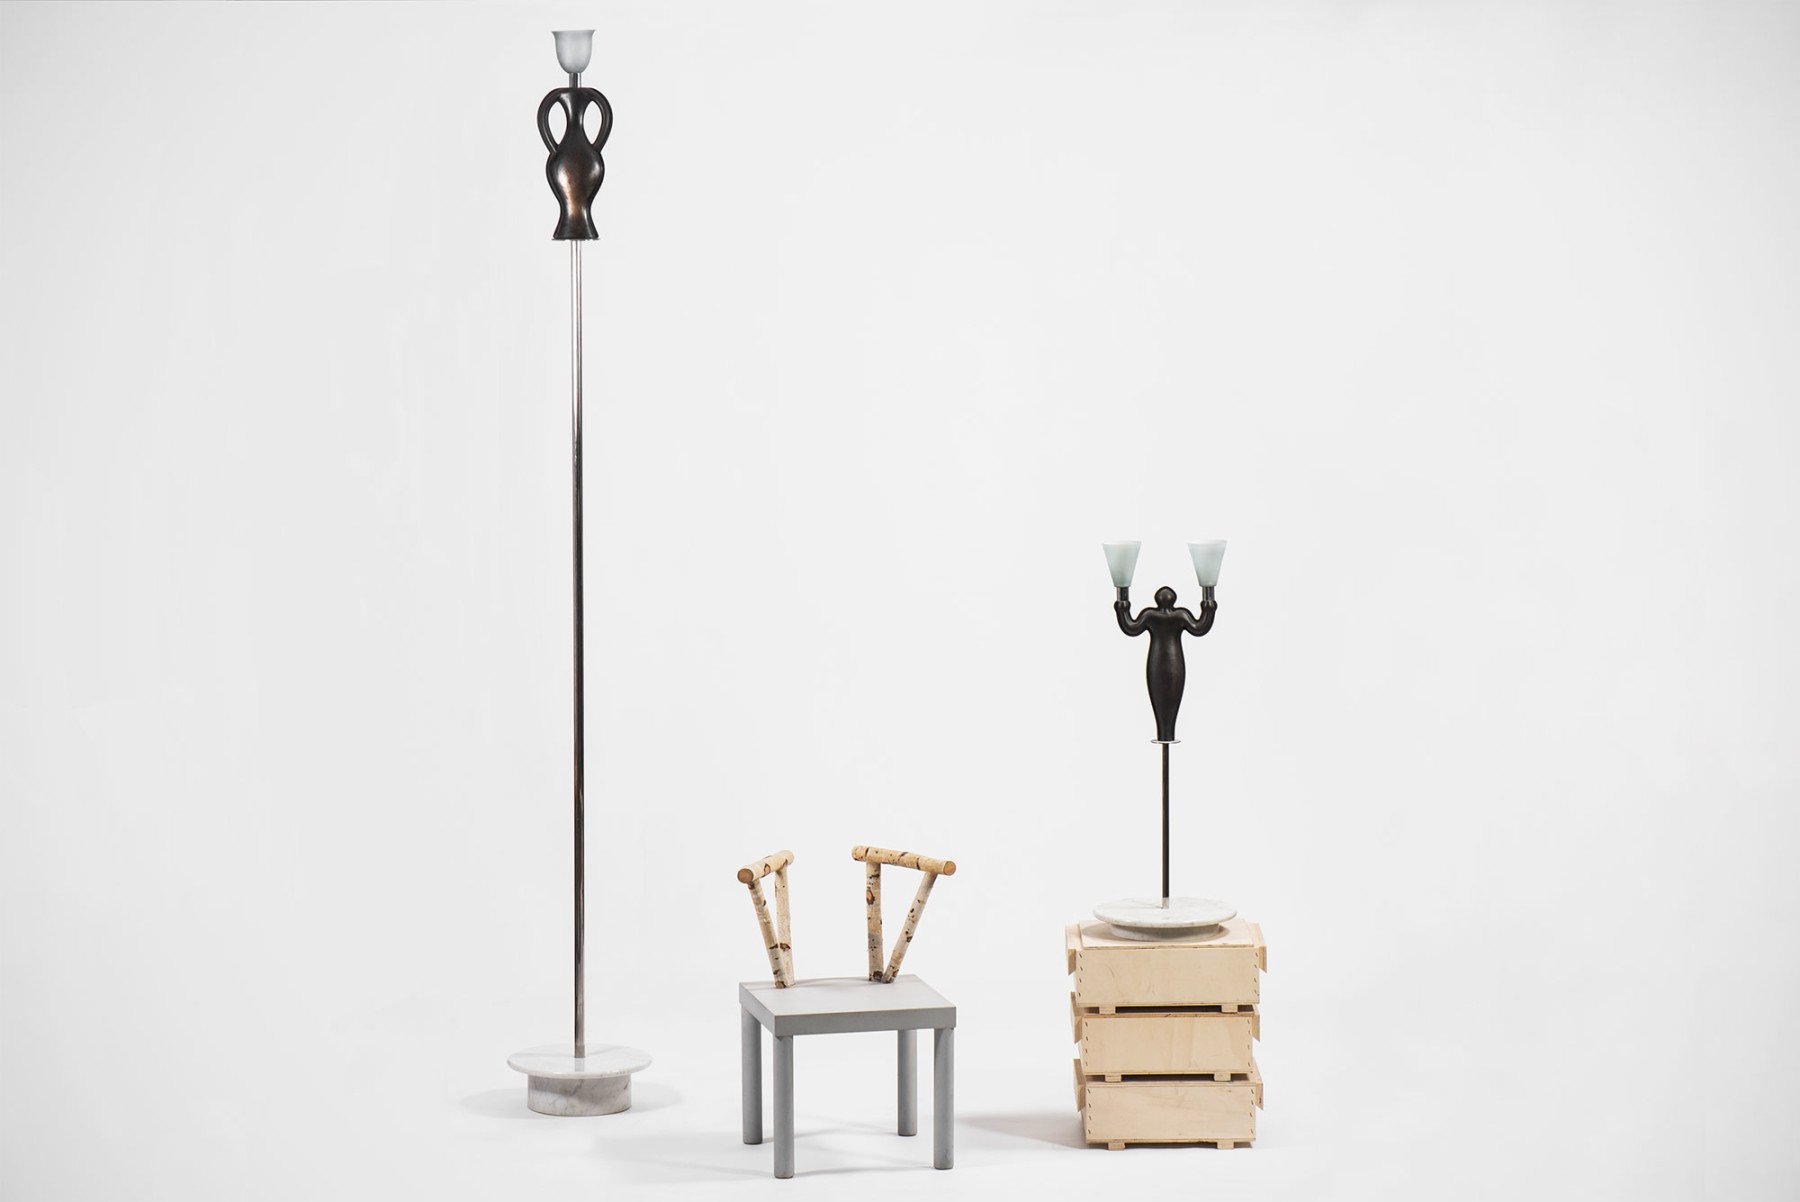 Andrea Branzi collection at Casati Gallery , Anfora floor lamp, Domestic Animals chair and Donna table lamp